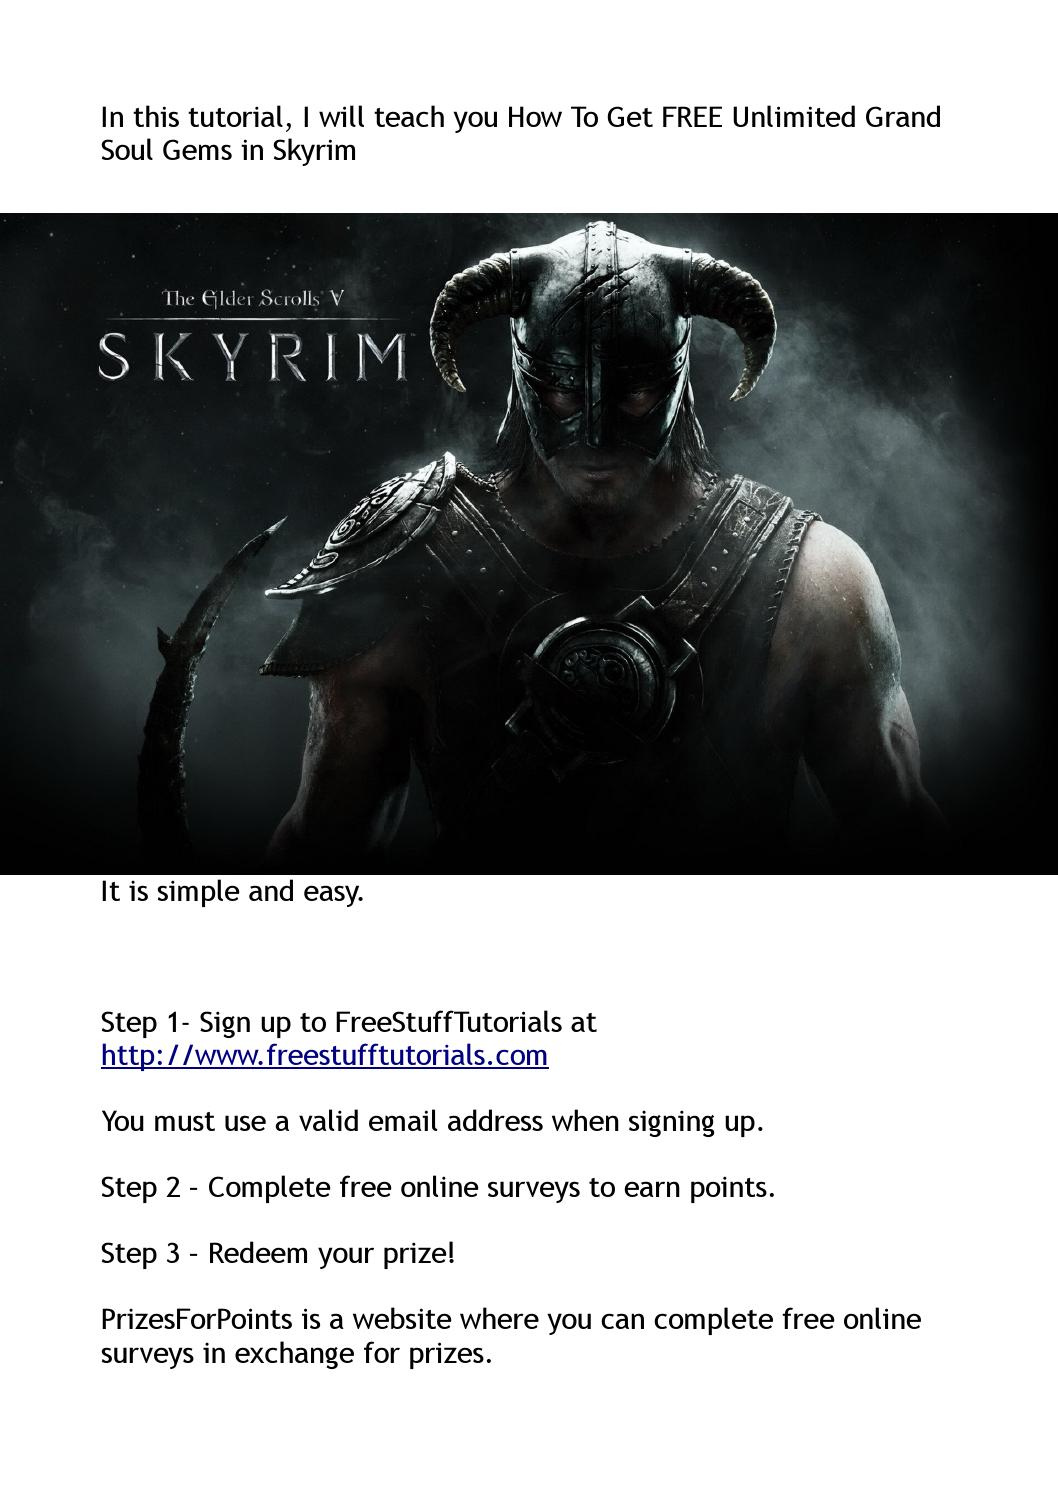 How To Get FREE Unlimited Grand Soul Gems in Skyrim by